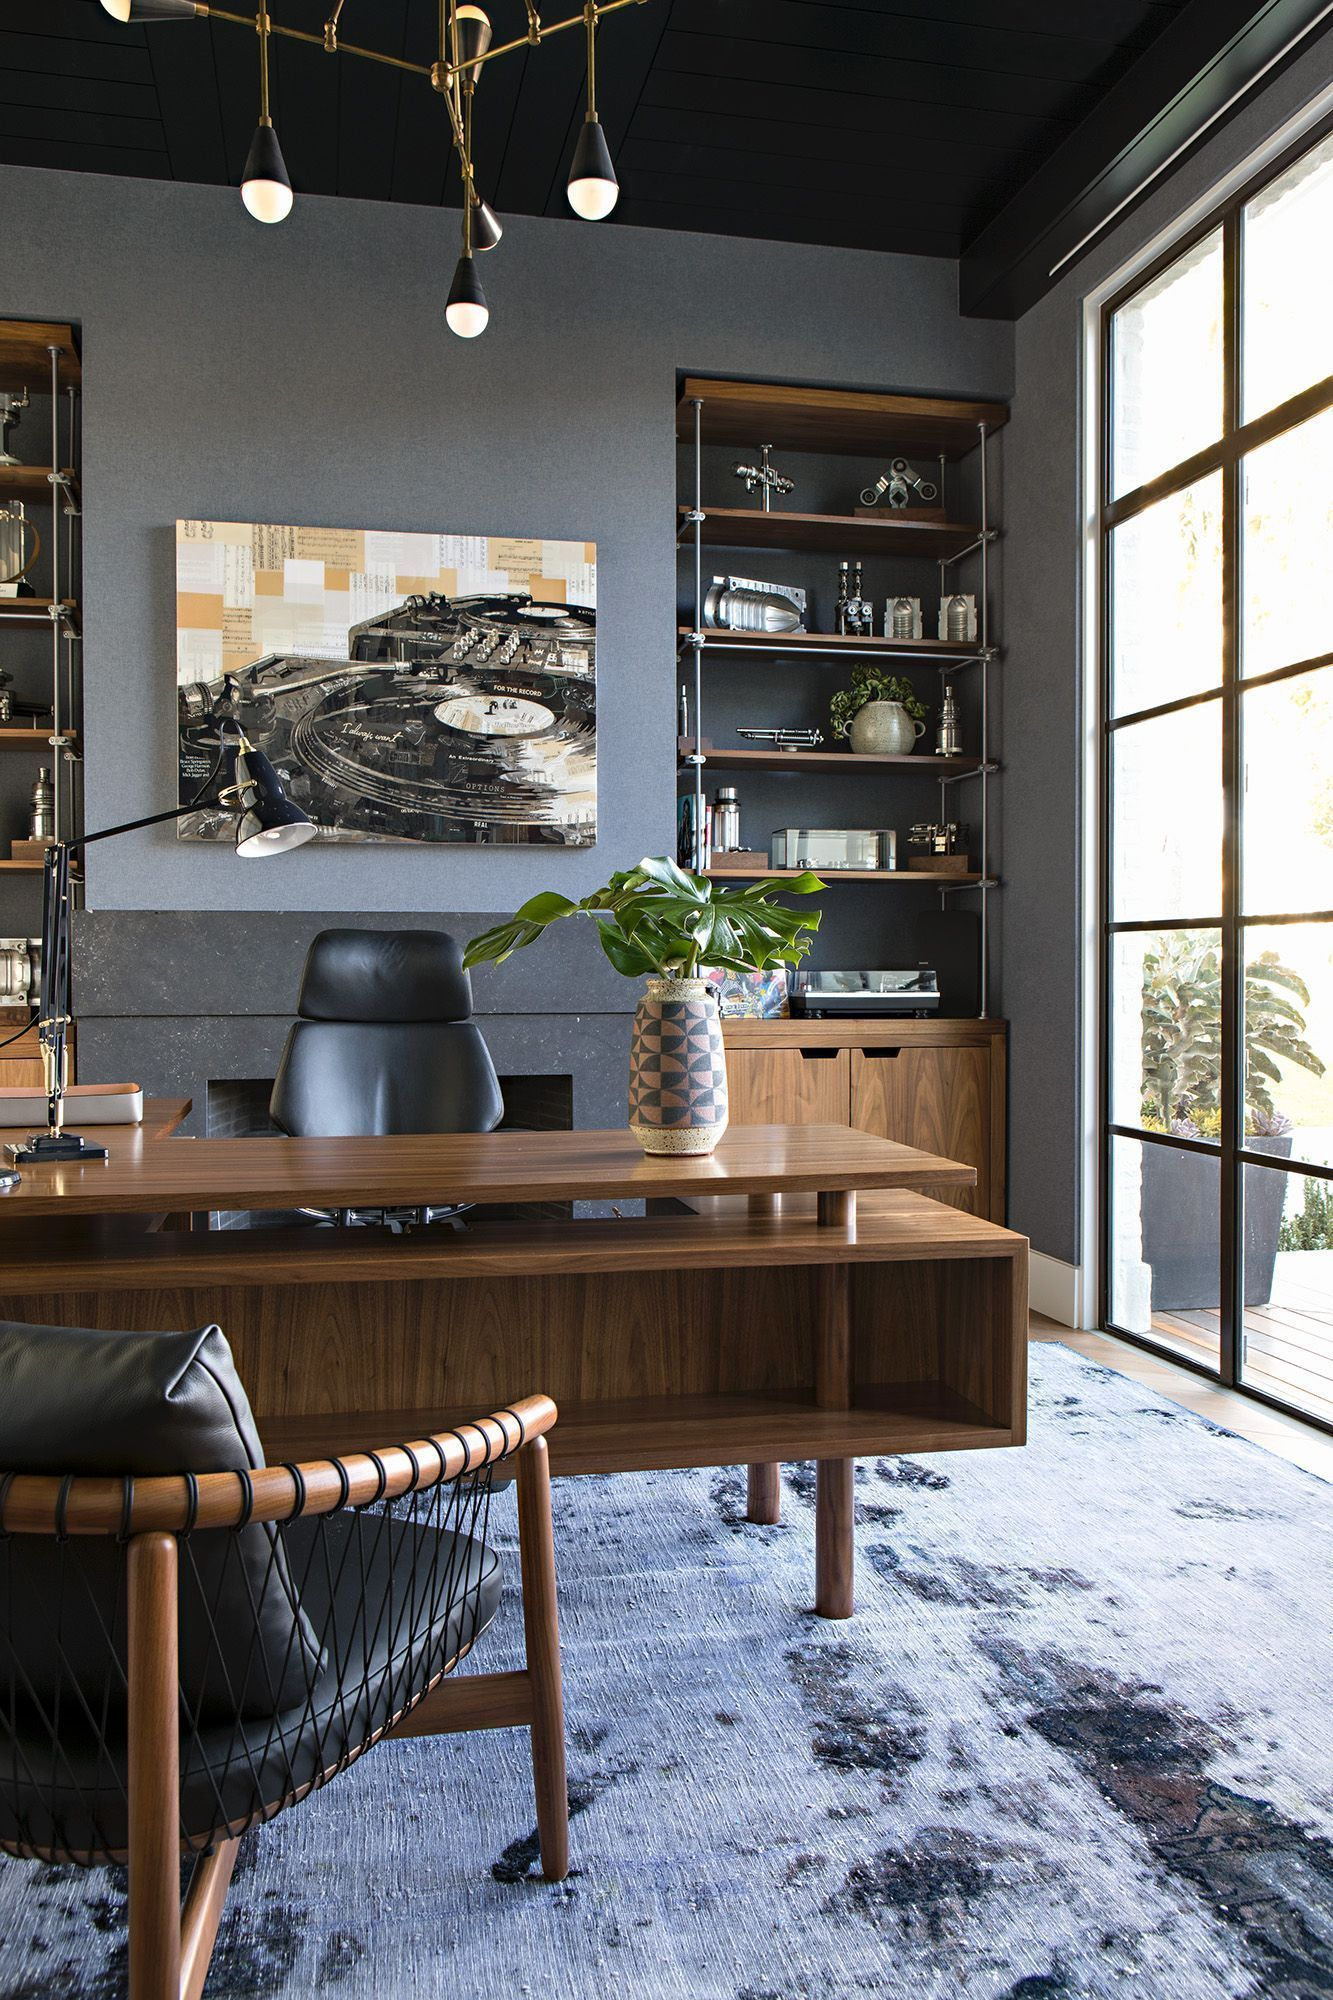 Find home office ideas including ideas for a small space desk